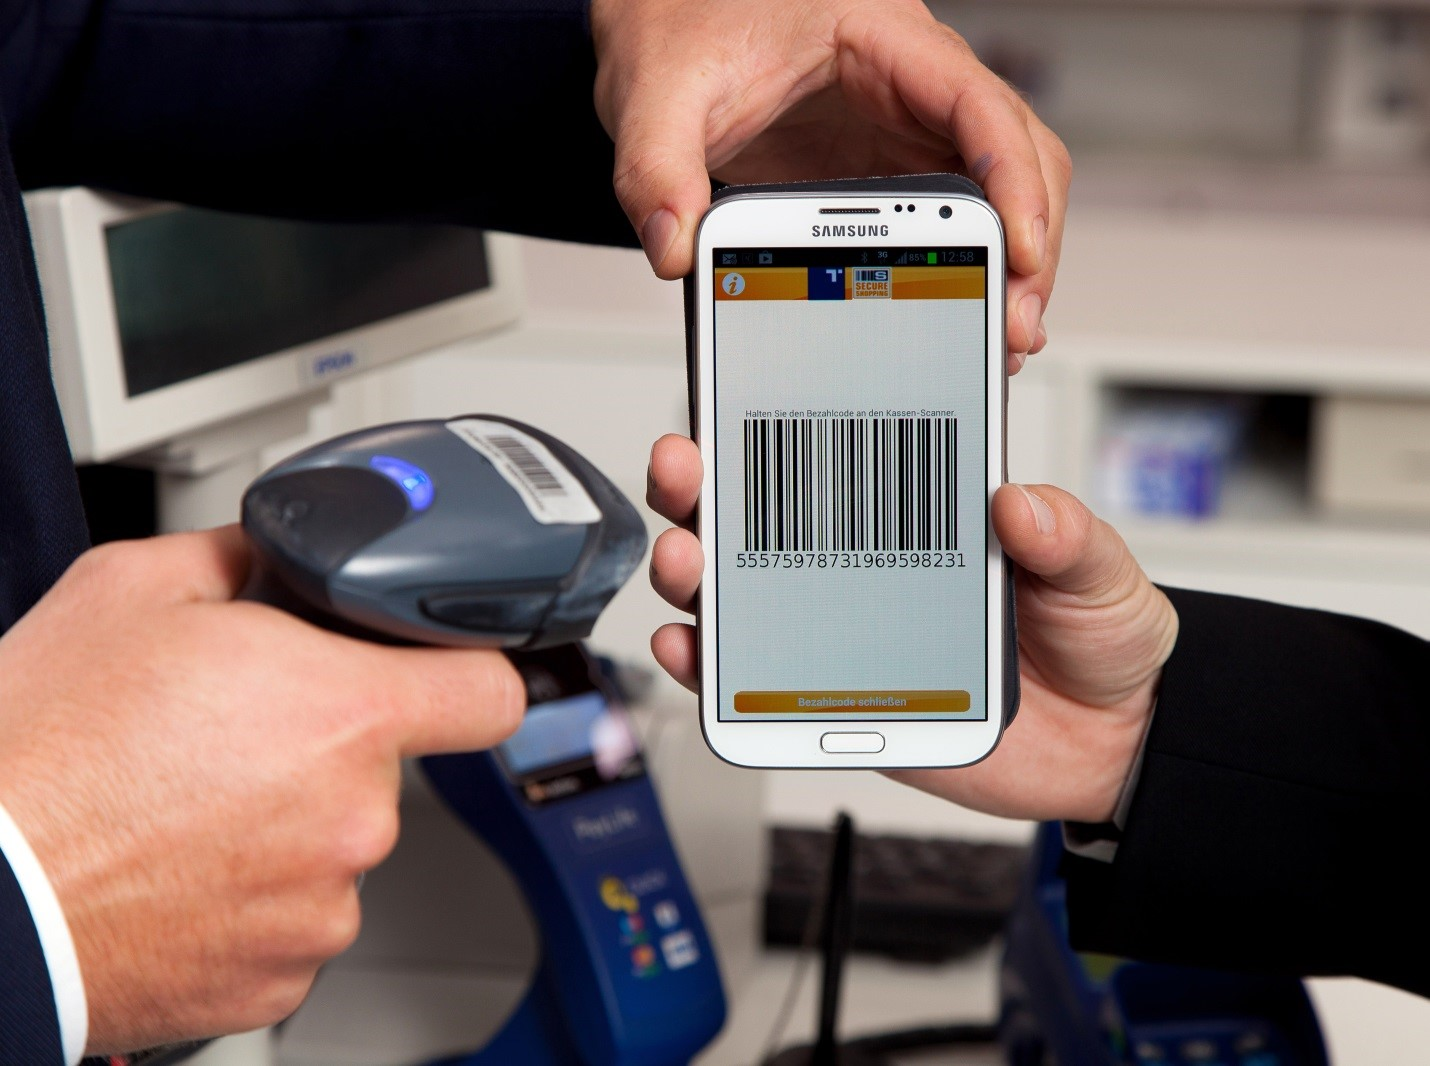 mobile payments pros cons